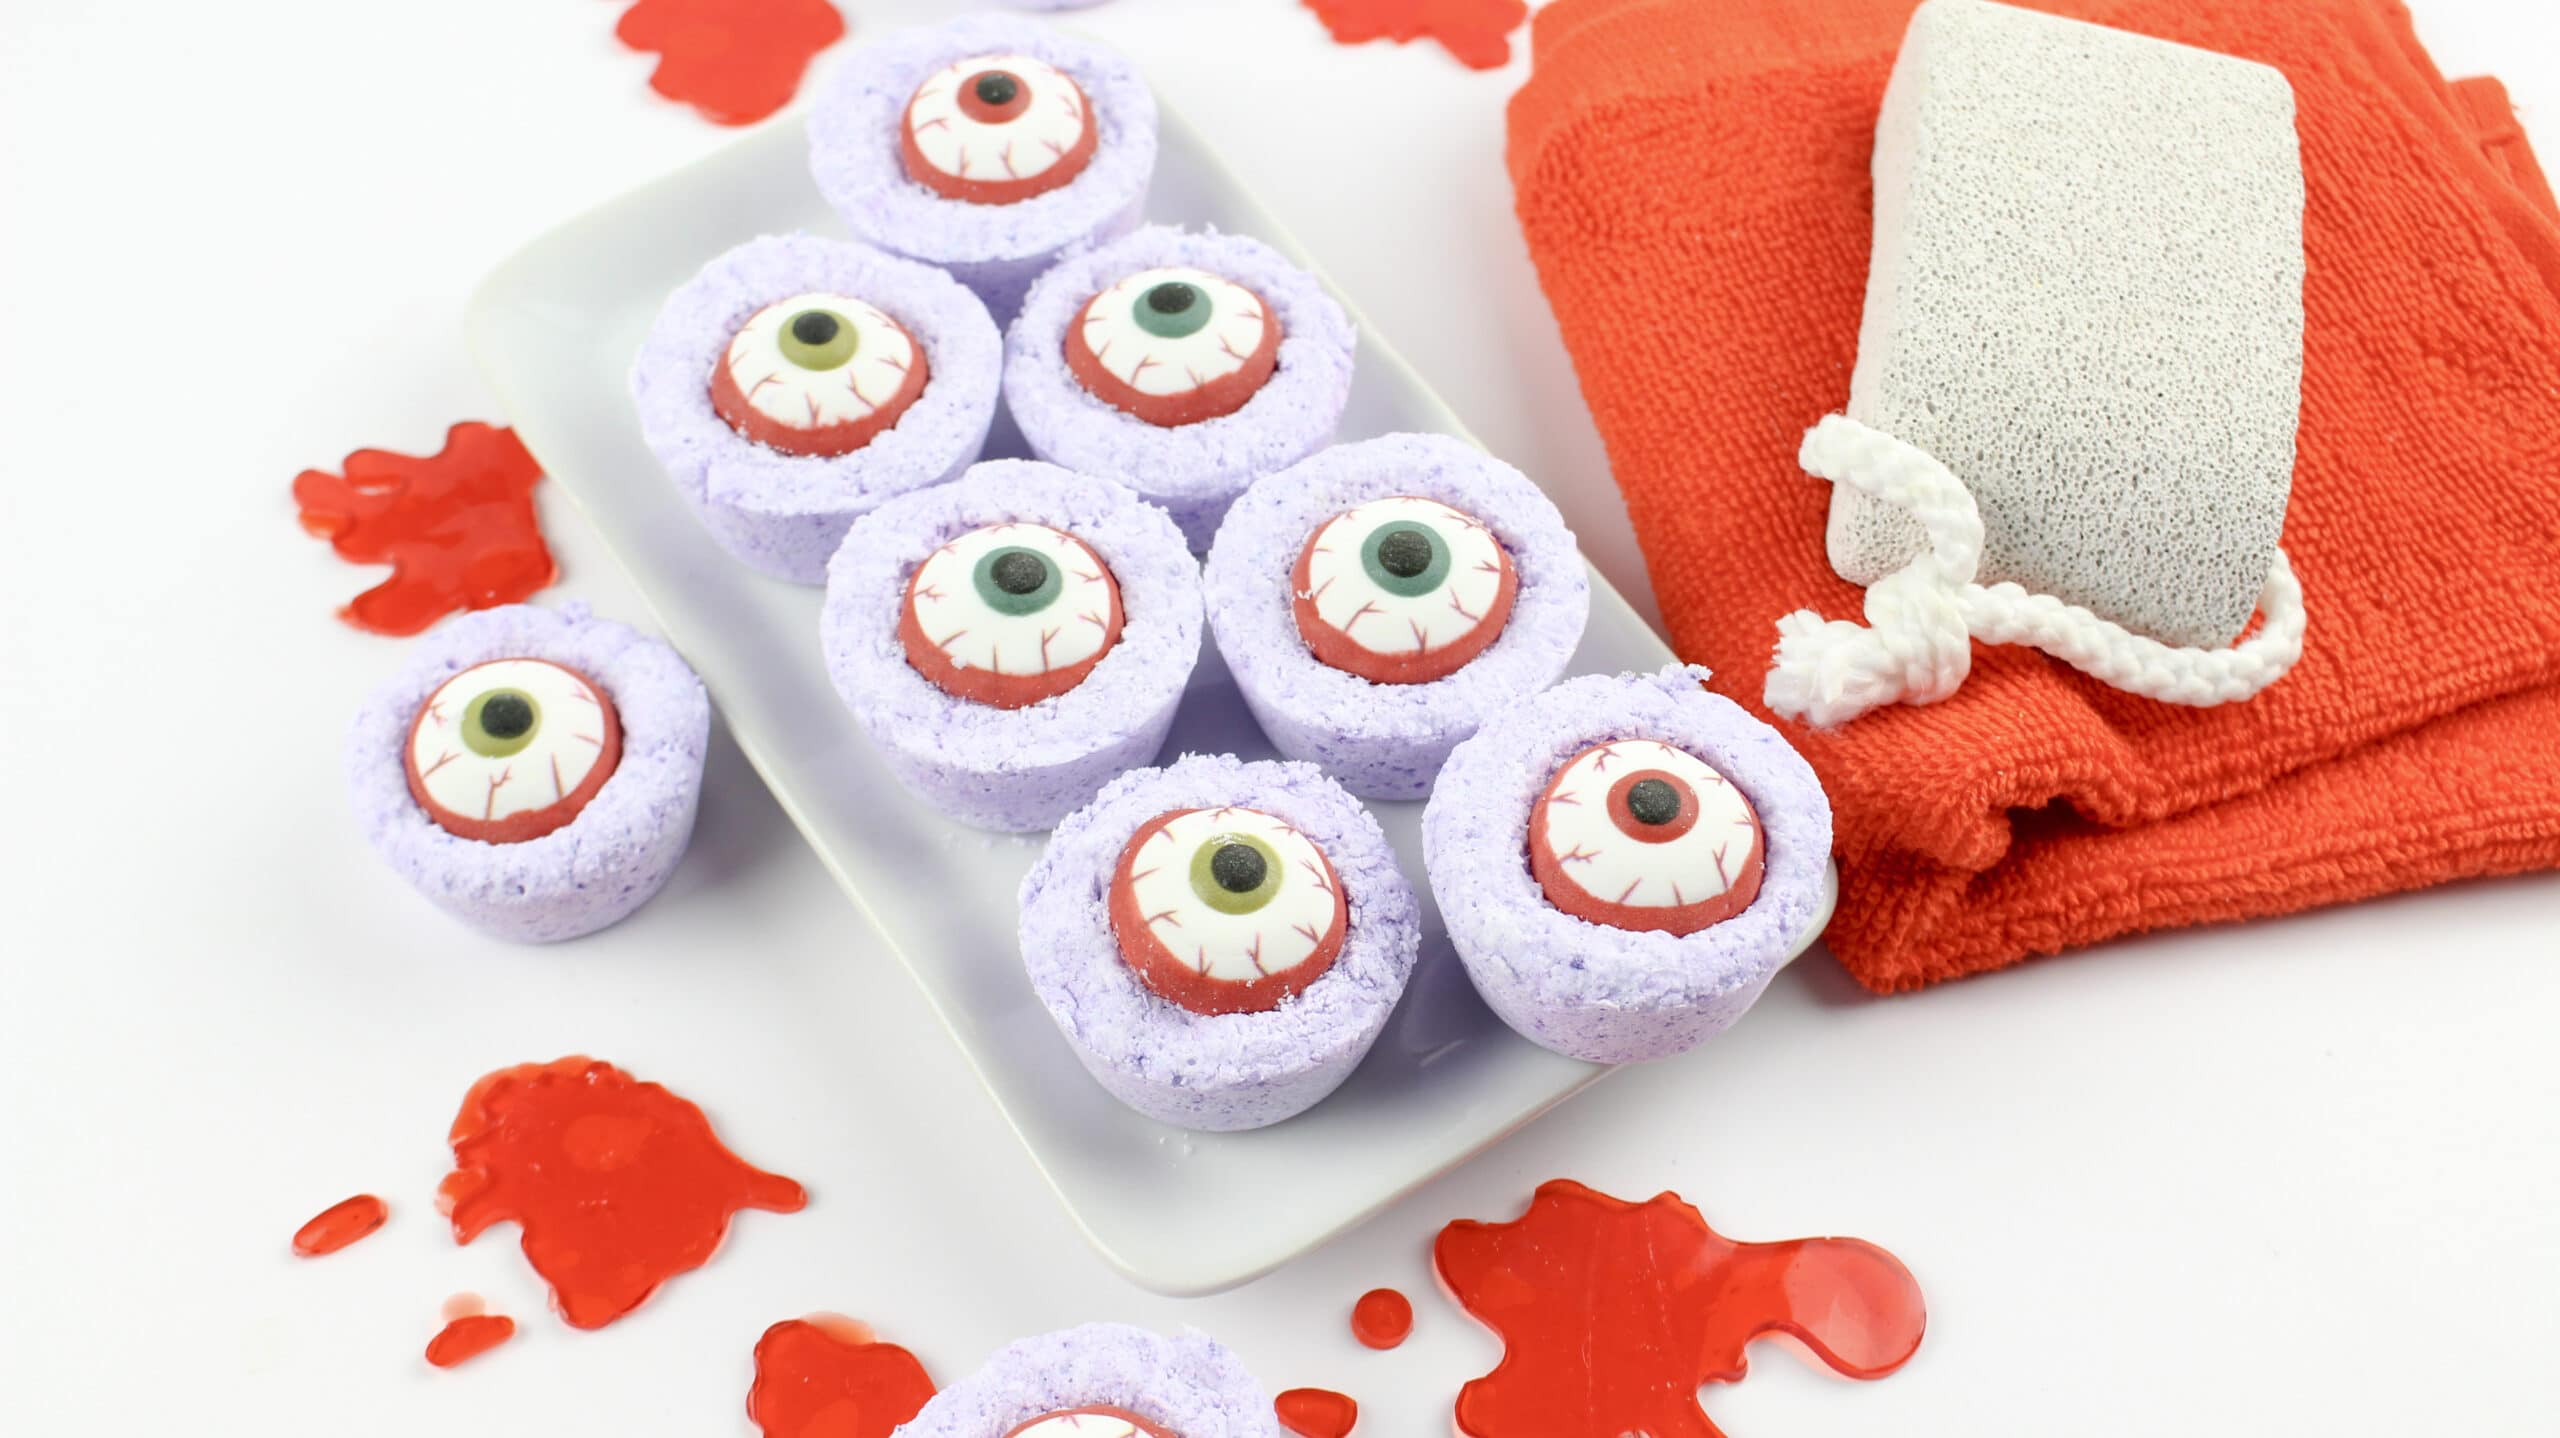 DIY Zombie Eyes Bath Bombs